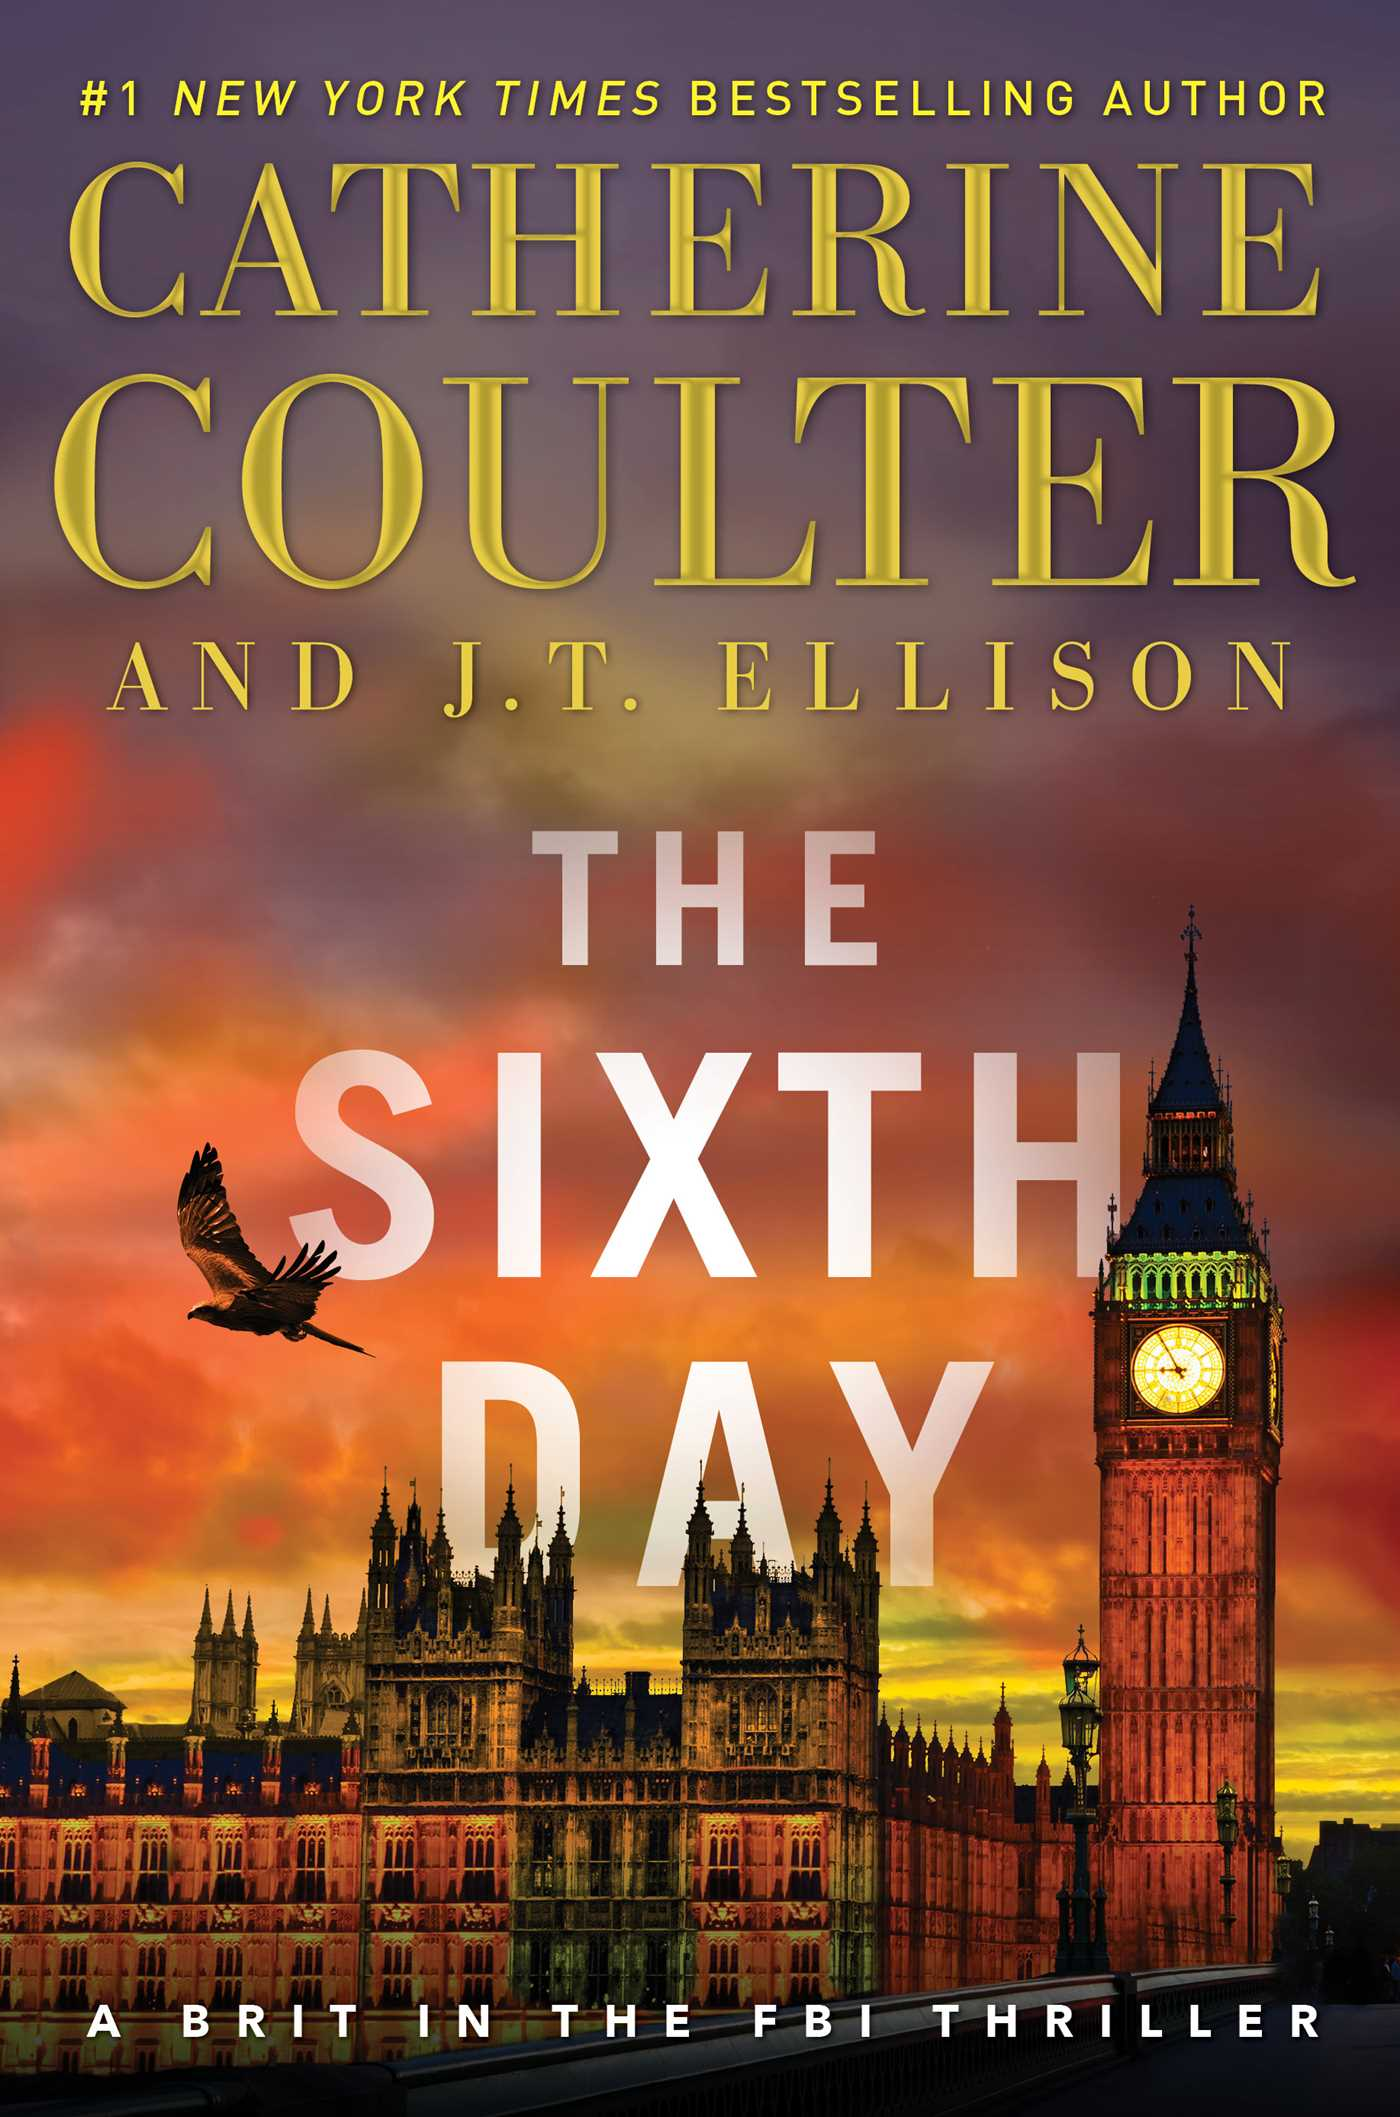 #5 - The Sixth Day